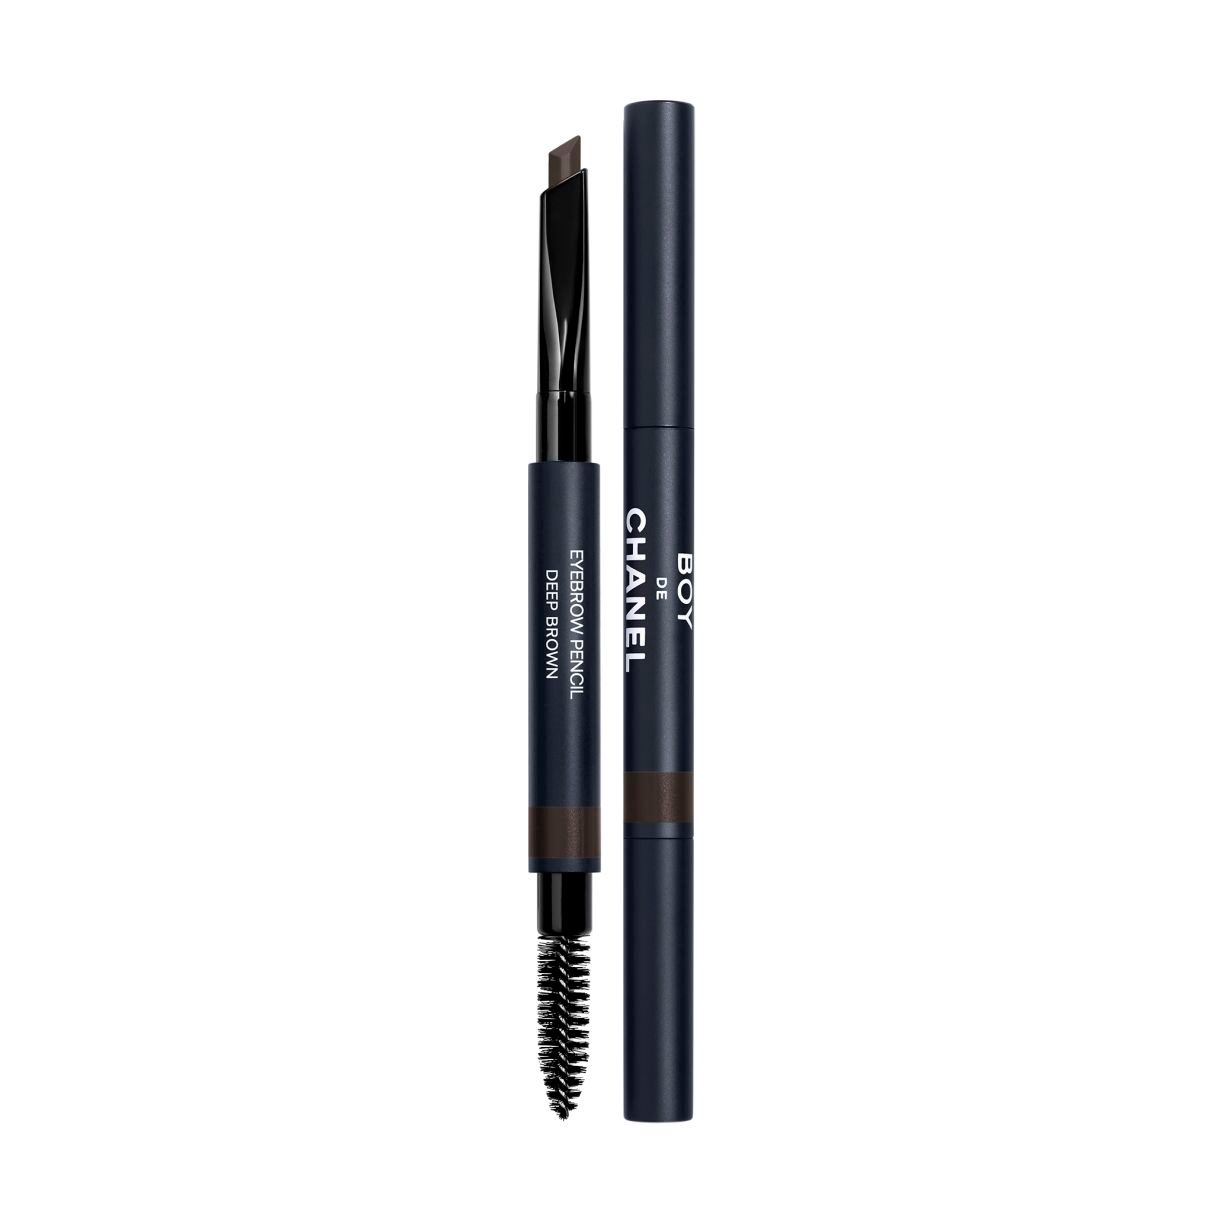 BOY DE CHANEL EYEBROW PENCIL WATERPROOF AND LONGWEARING EYEBROW PENCIL 206 - DEEP BROWN